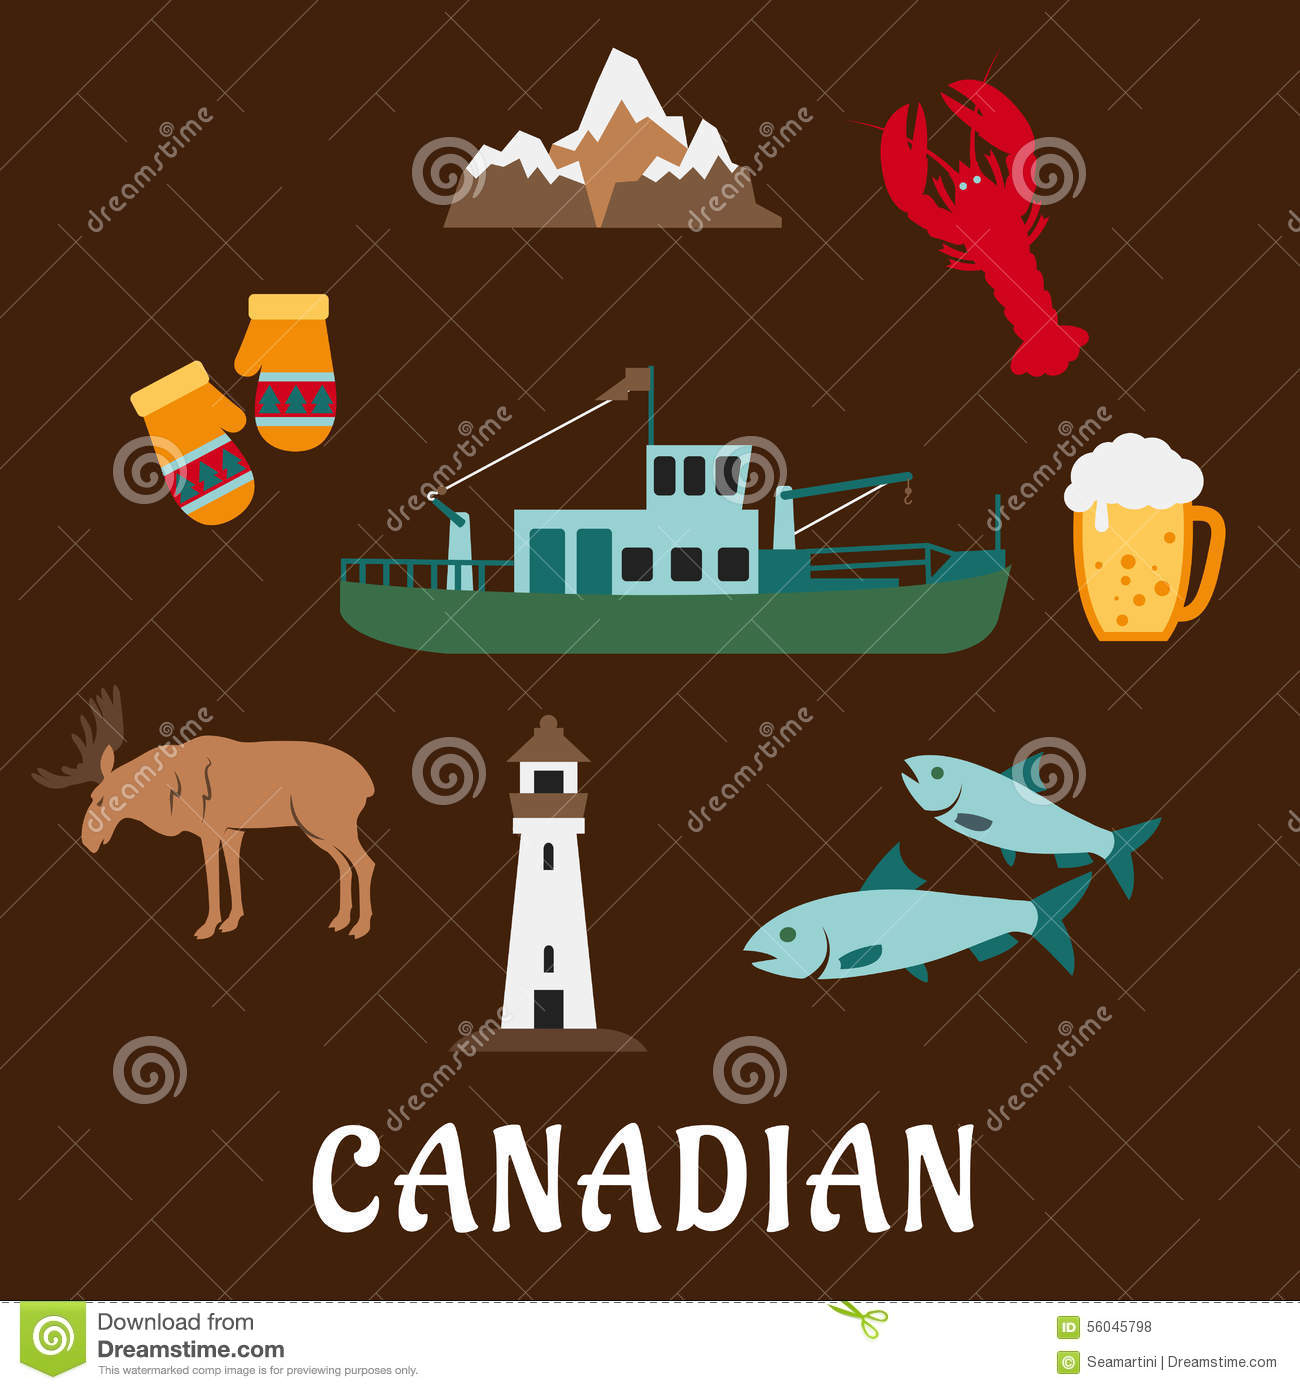 Canadian Nature And Culture Symbols Stock Vector - Image: 56045798